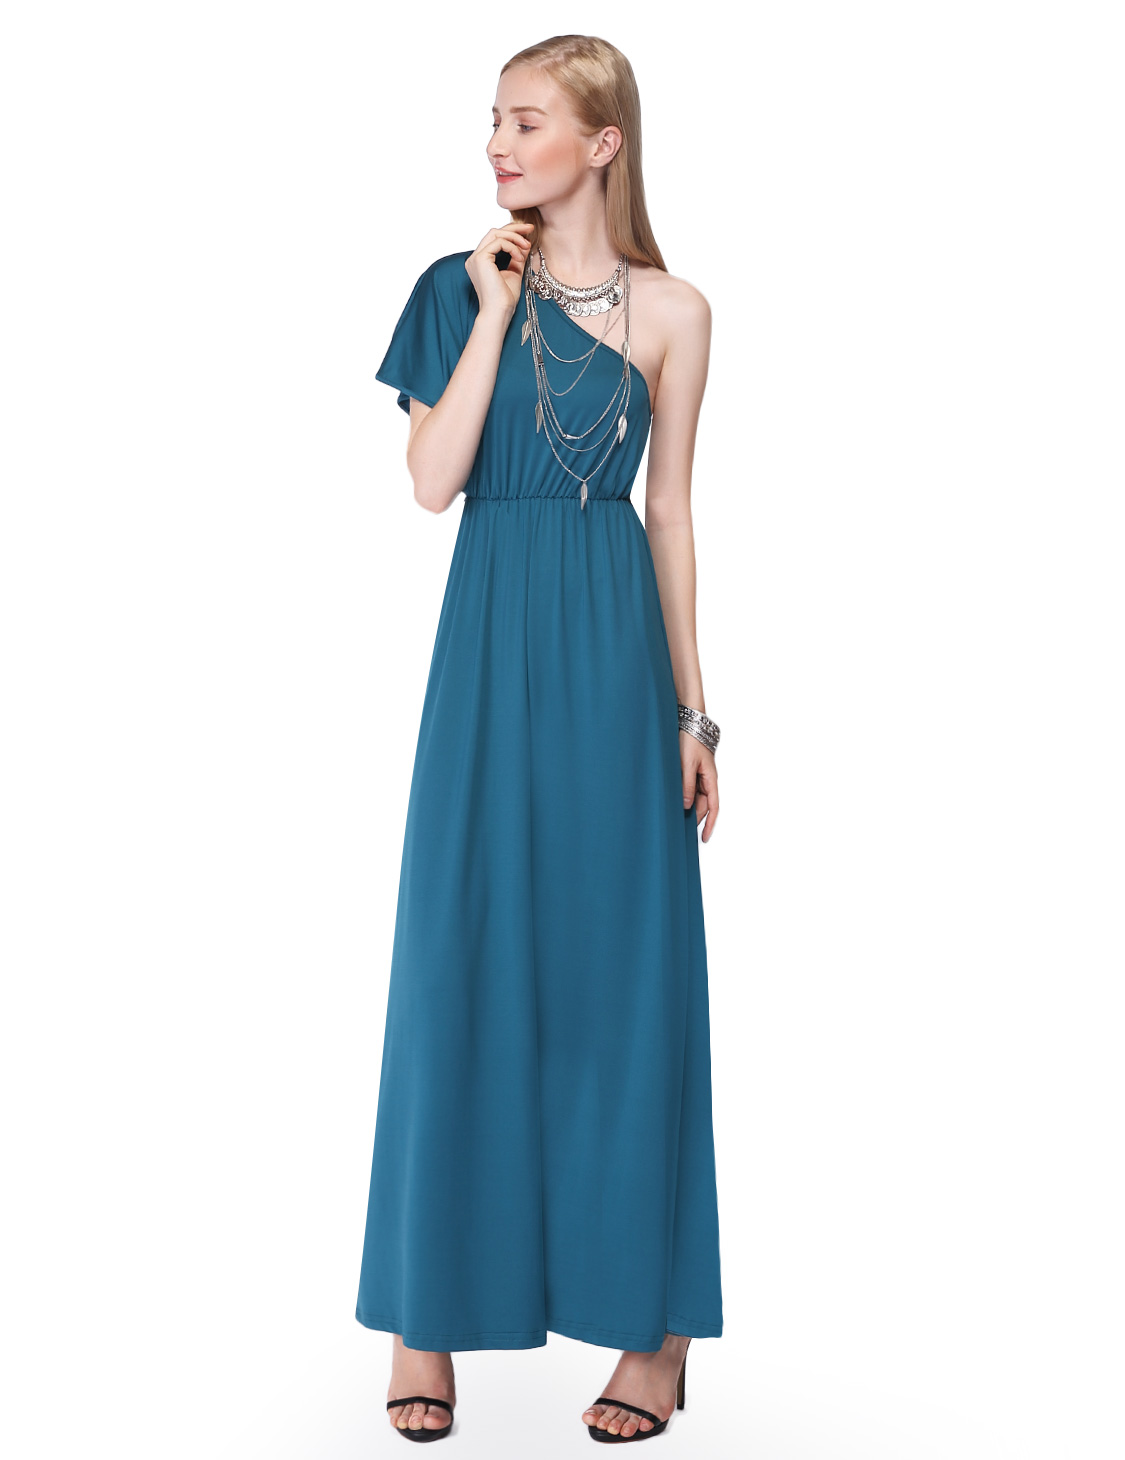 Ever-Pretty Maxi Dress for Women One Shoulder Summer Holiday Party ...